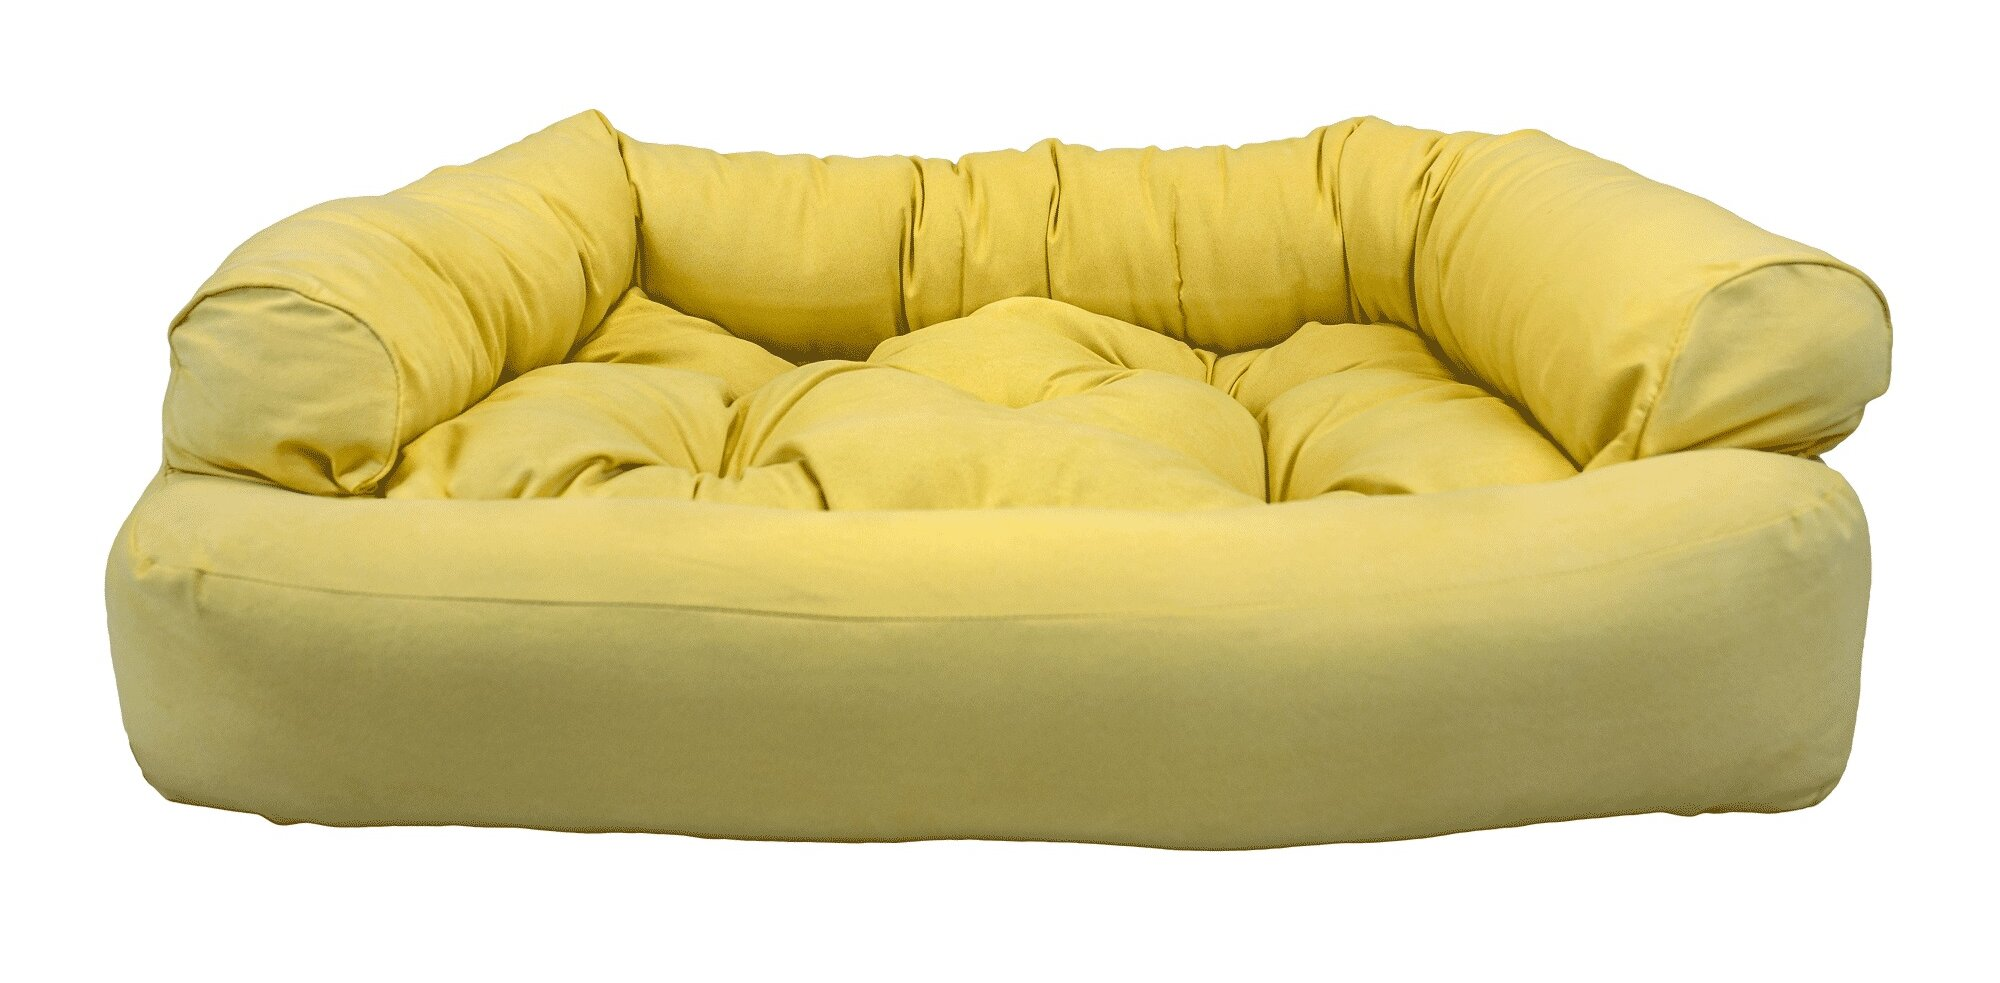 Snoozer Overstuffed Luxury Dog Sofa You 39 Ll Love Wayfair